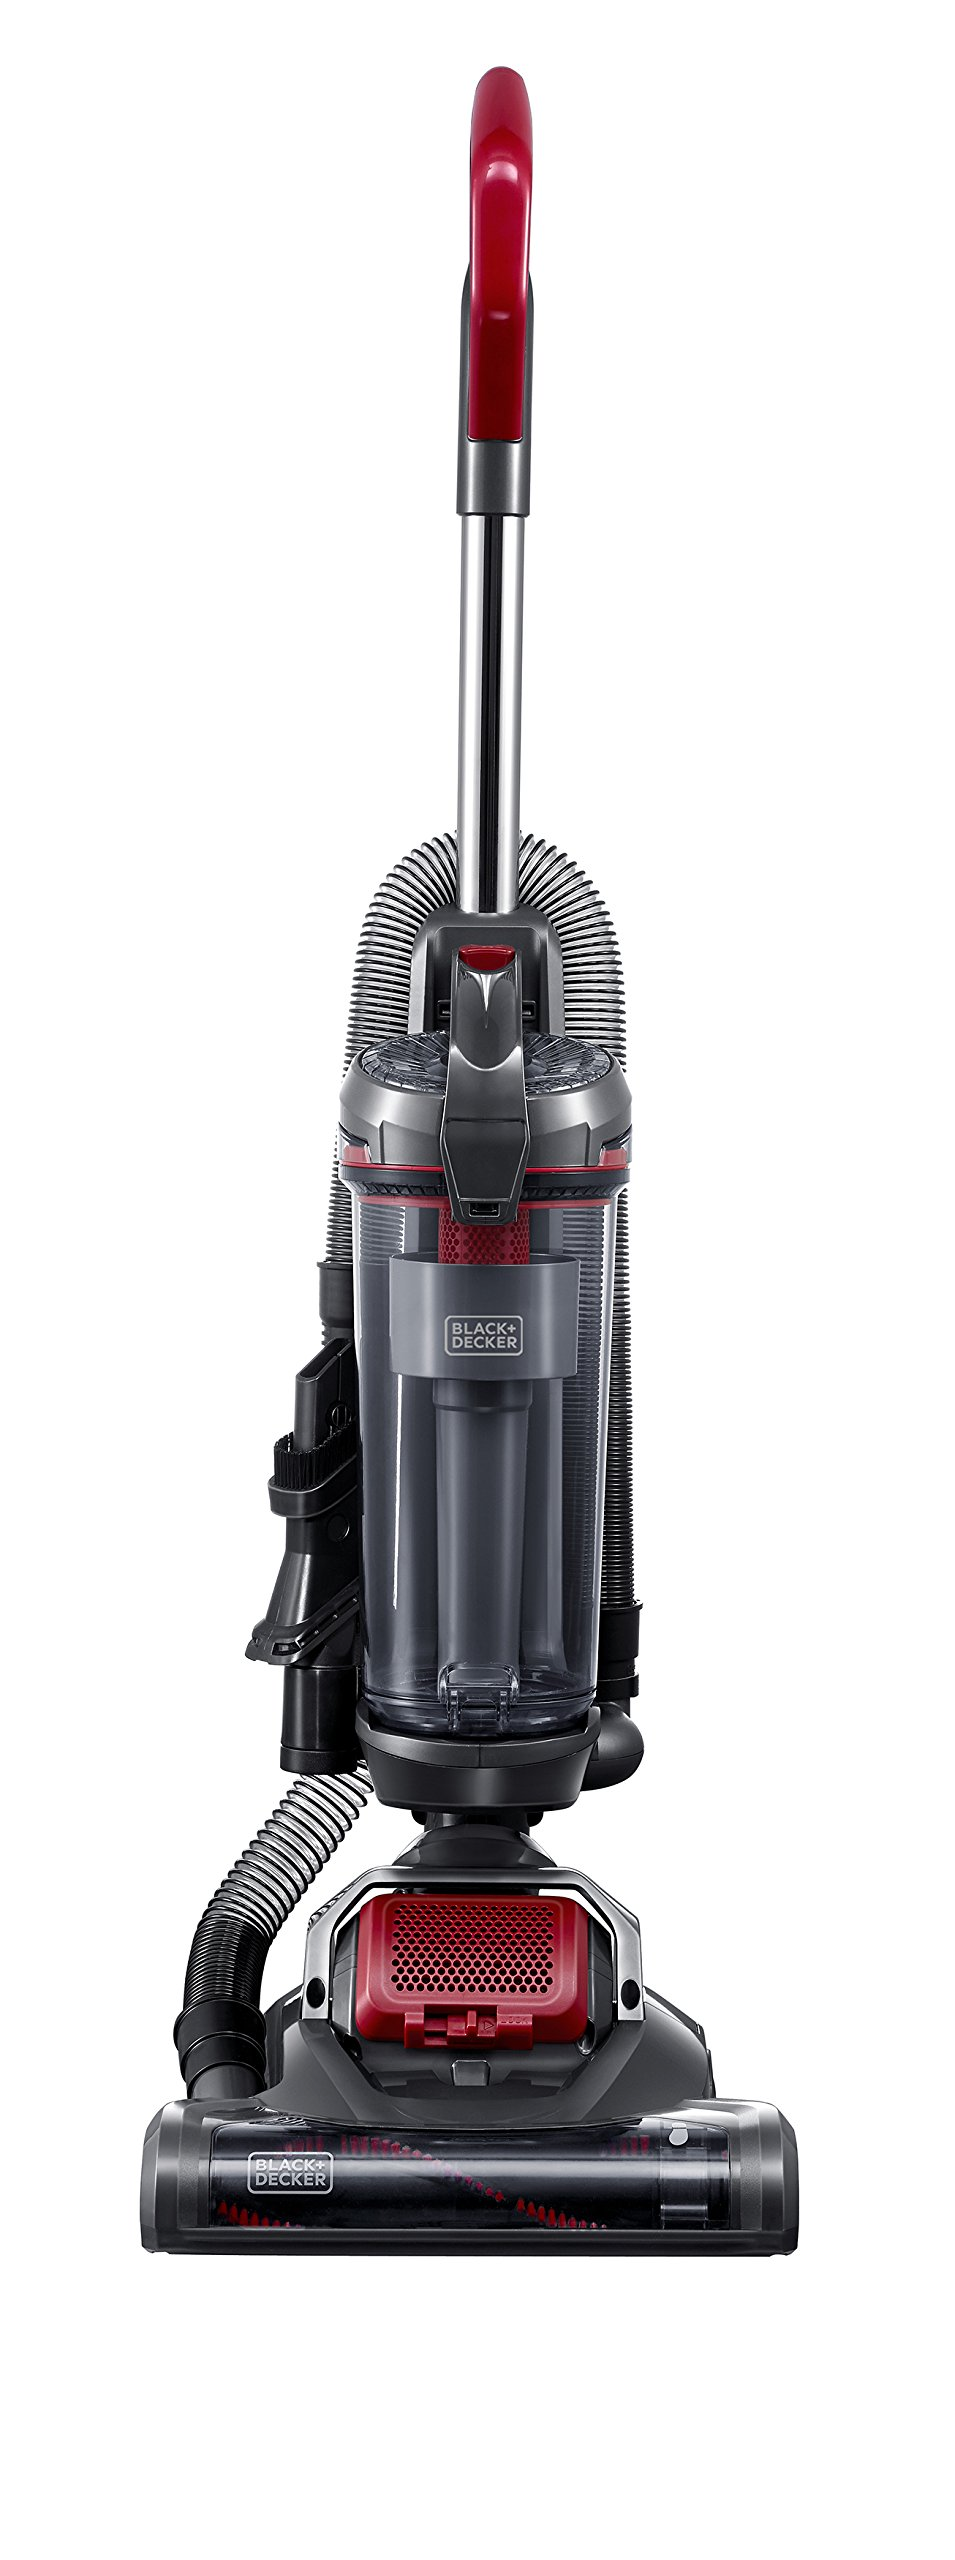 Black+Decker Light Weight Black & Decker BDASV102 AIRSWIVEL Ultra-LightWeight Upright Cleaner, Versatile Vacuum, Red, by BLACK+DECKER